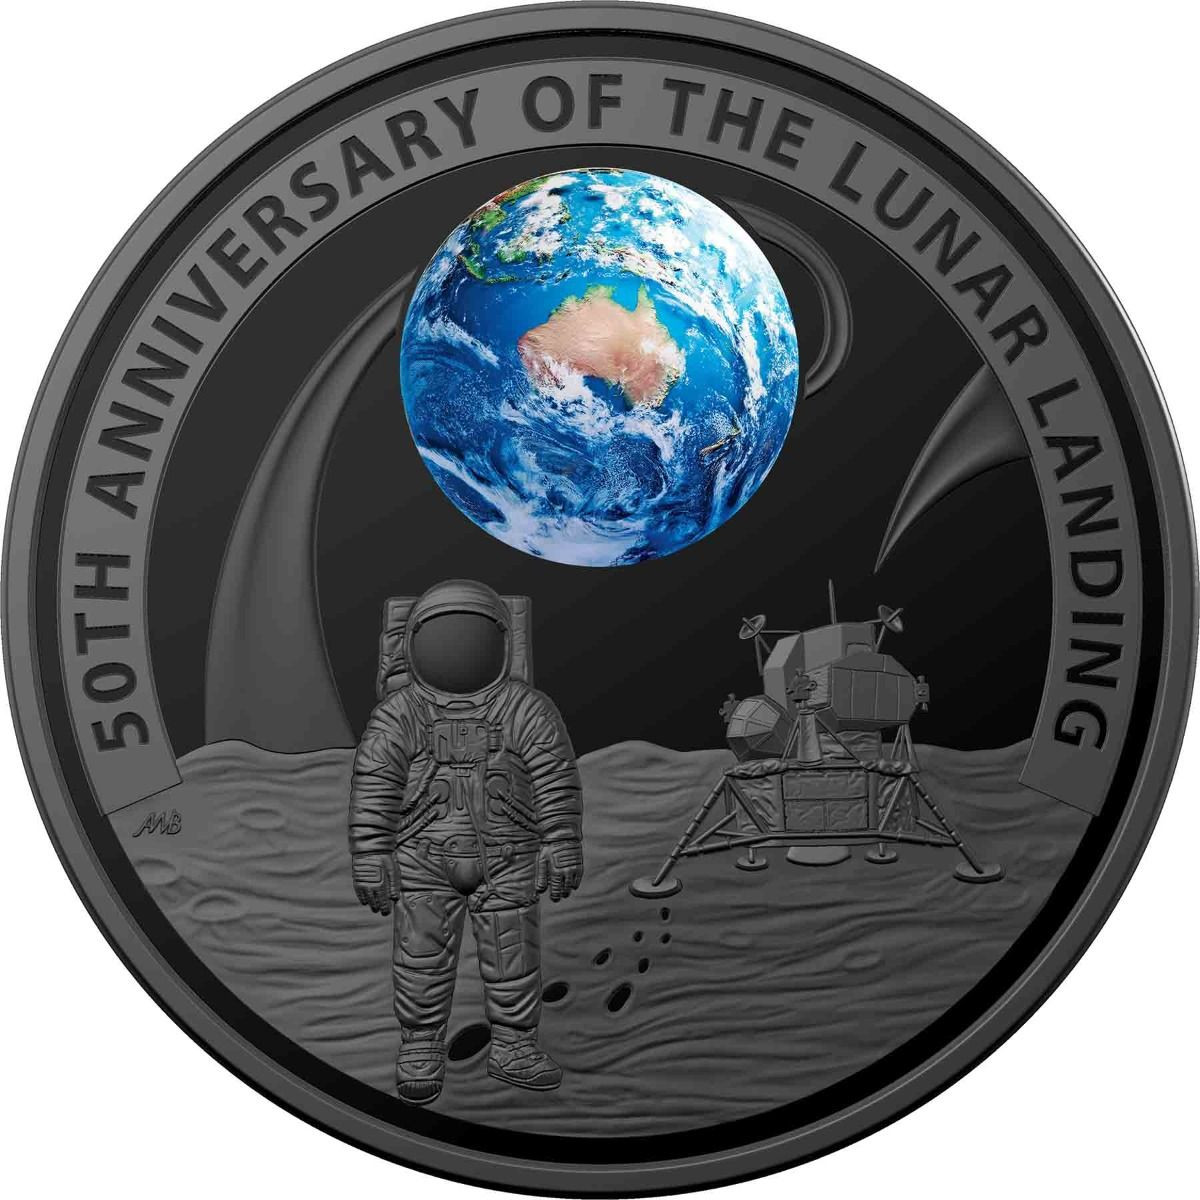 50th Anniversary of the Moon Landing 2019 $5 Nickel-Plated Domed Silver  Proof Coin